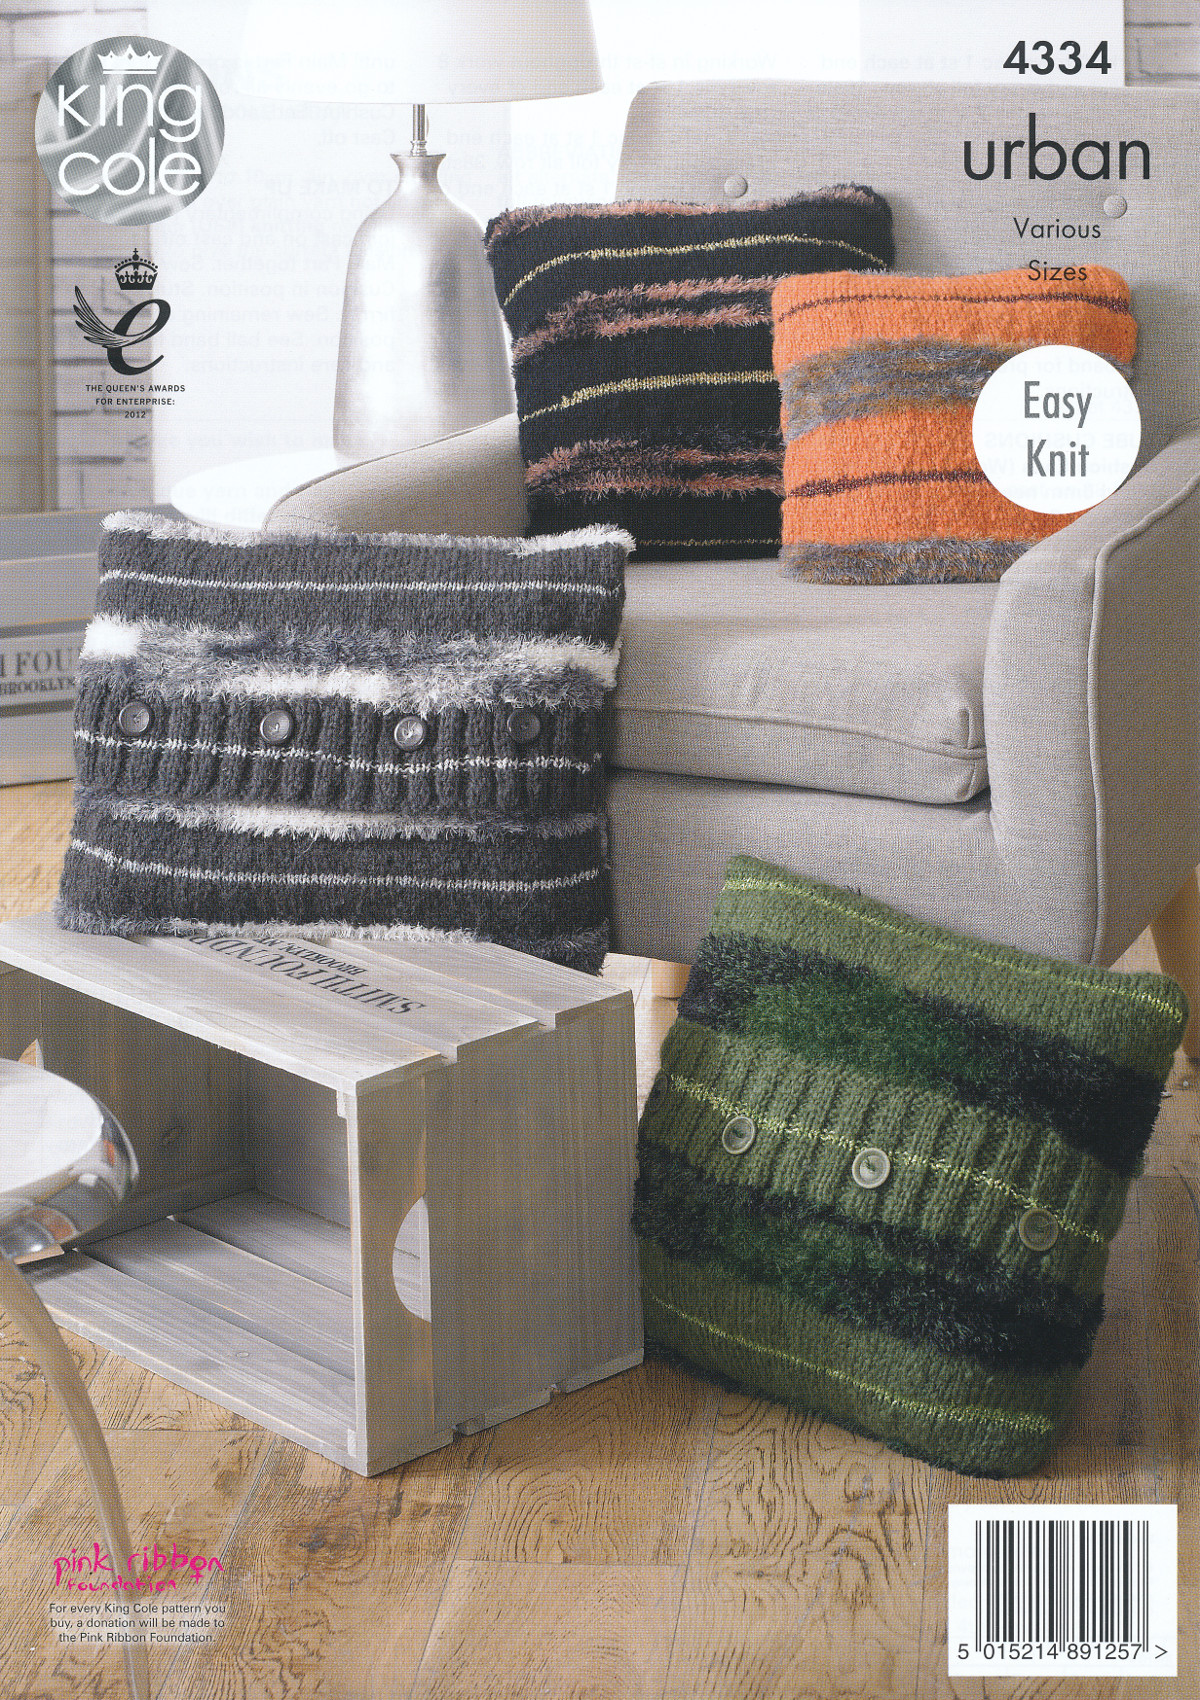 King cole urban knitting pattern cushions round square tube or item description this easy knit knitting pattern bankloansurffo Gallery